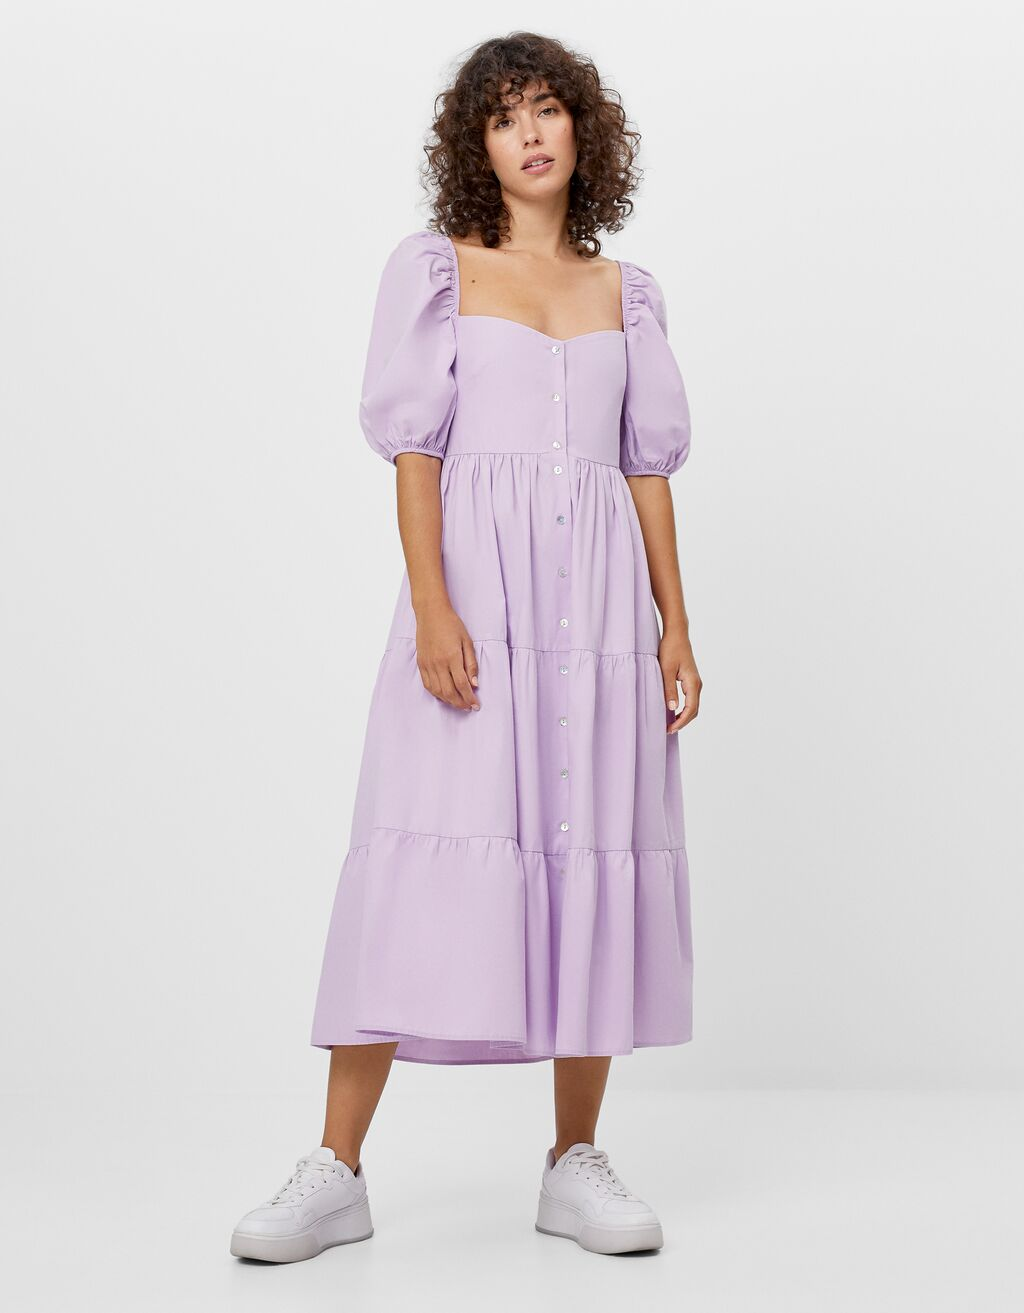 Poplin dress with ruffles